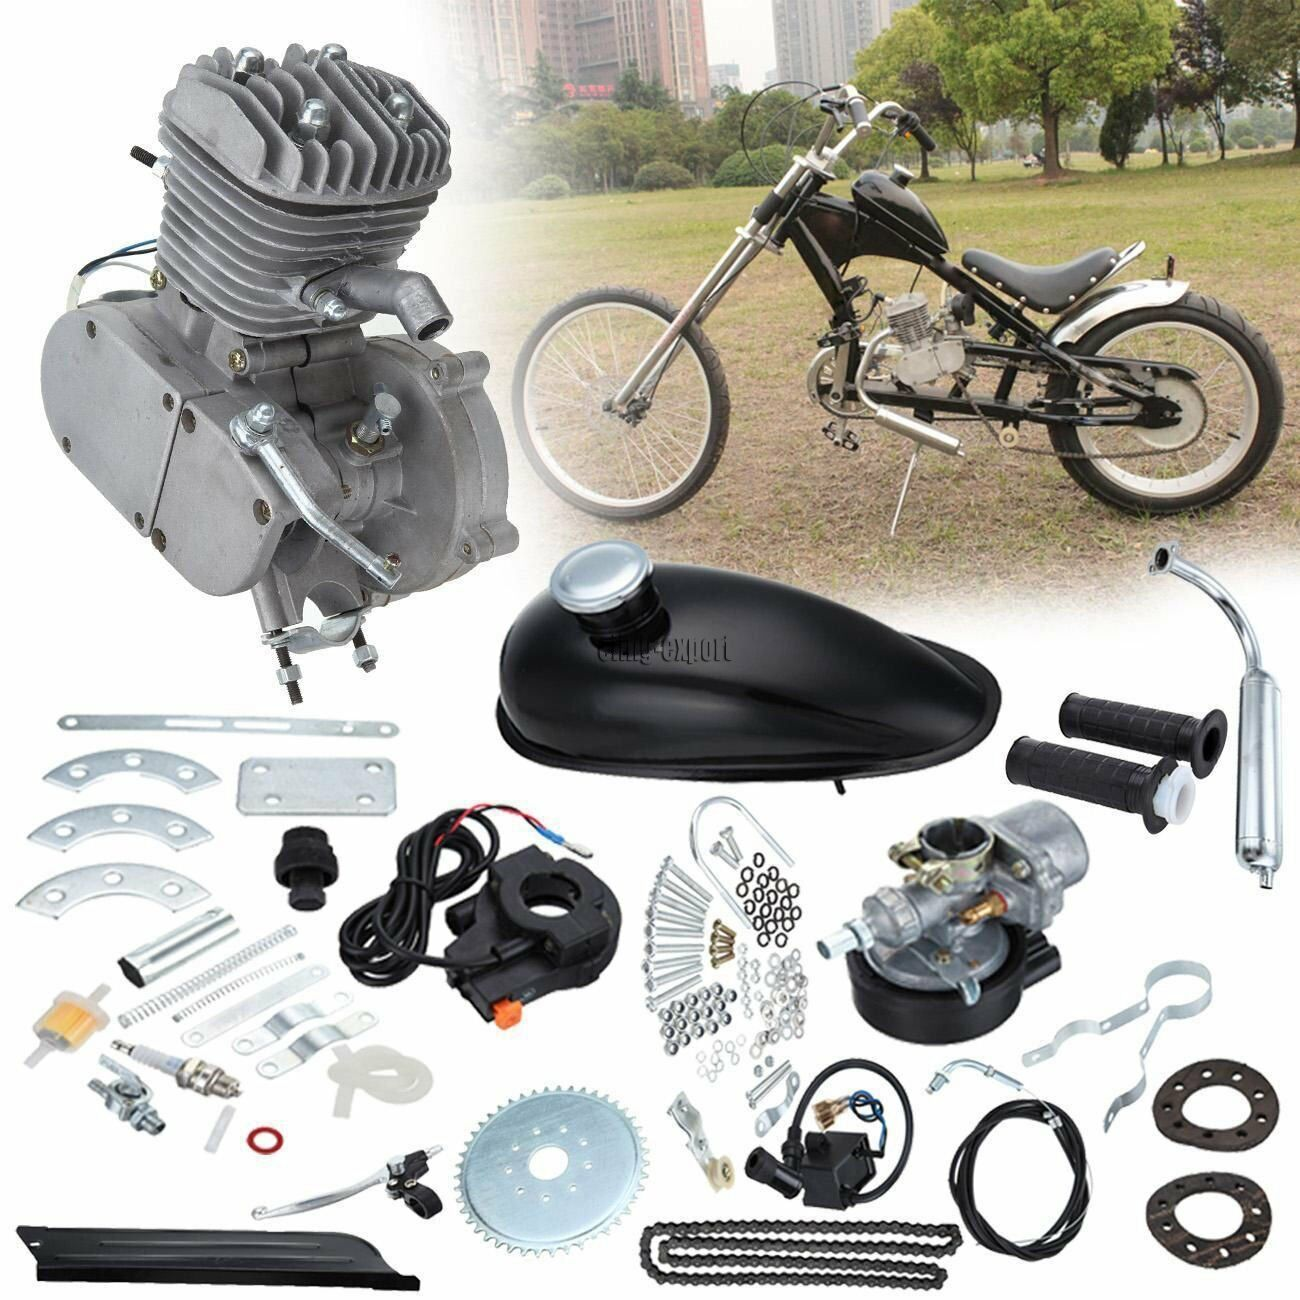 de9b9b71136 Details about 80cc 2-Stroke Motor Engine Kit Gas for Motorized Bicycle Bike  Chrome Pipe Set